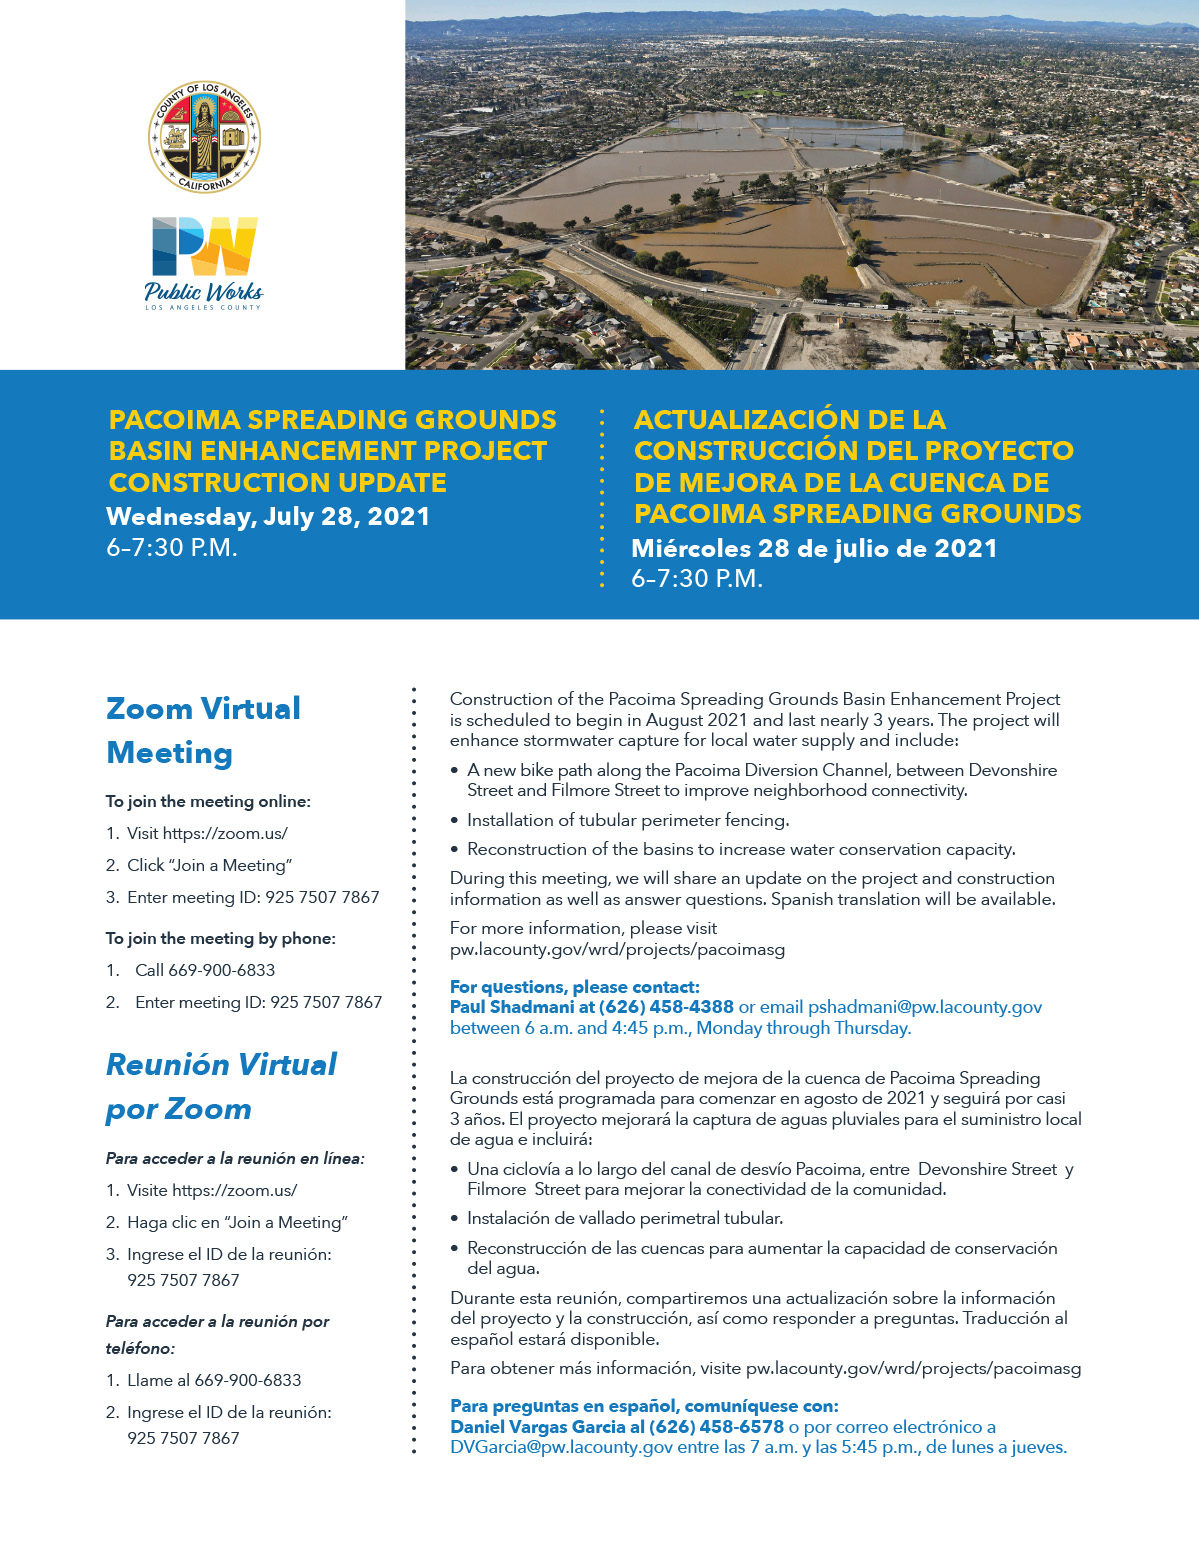 pacoima spreading grounds project